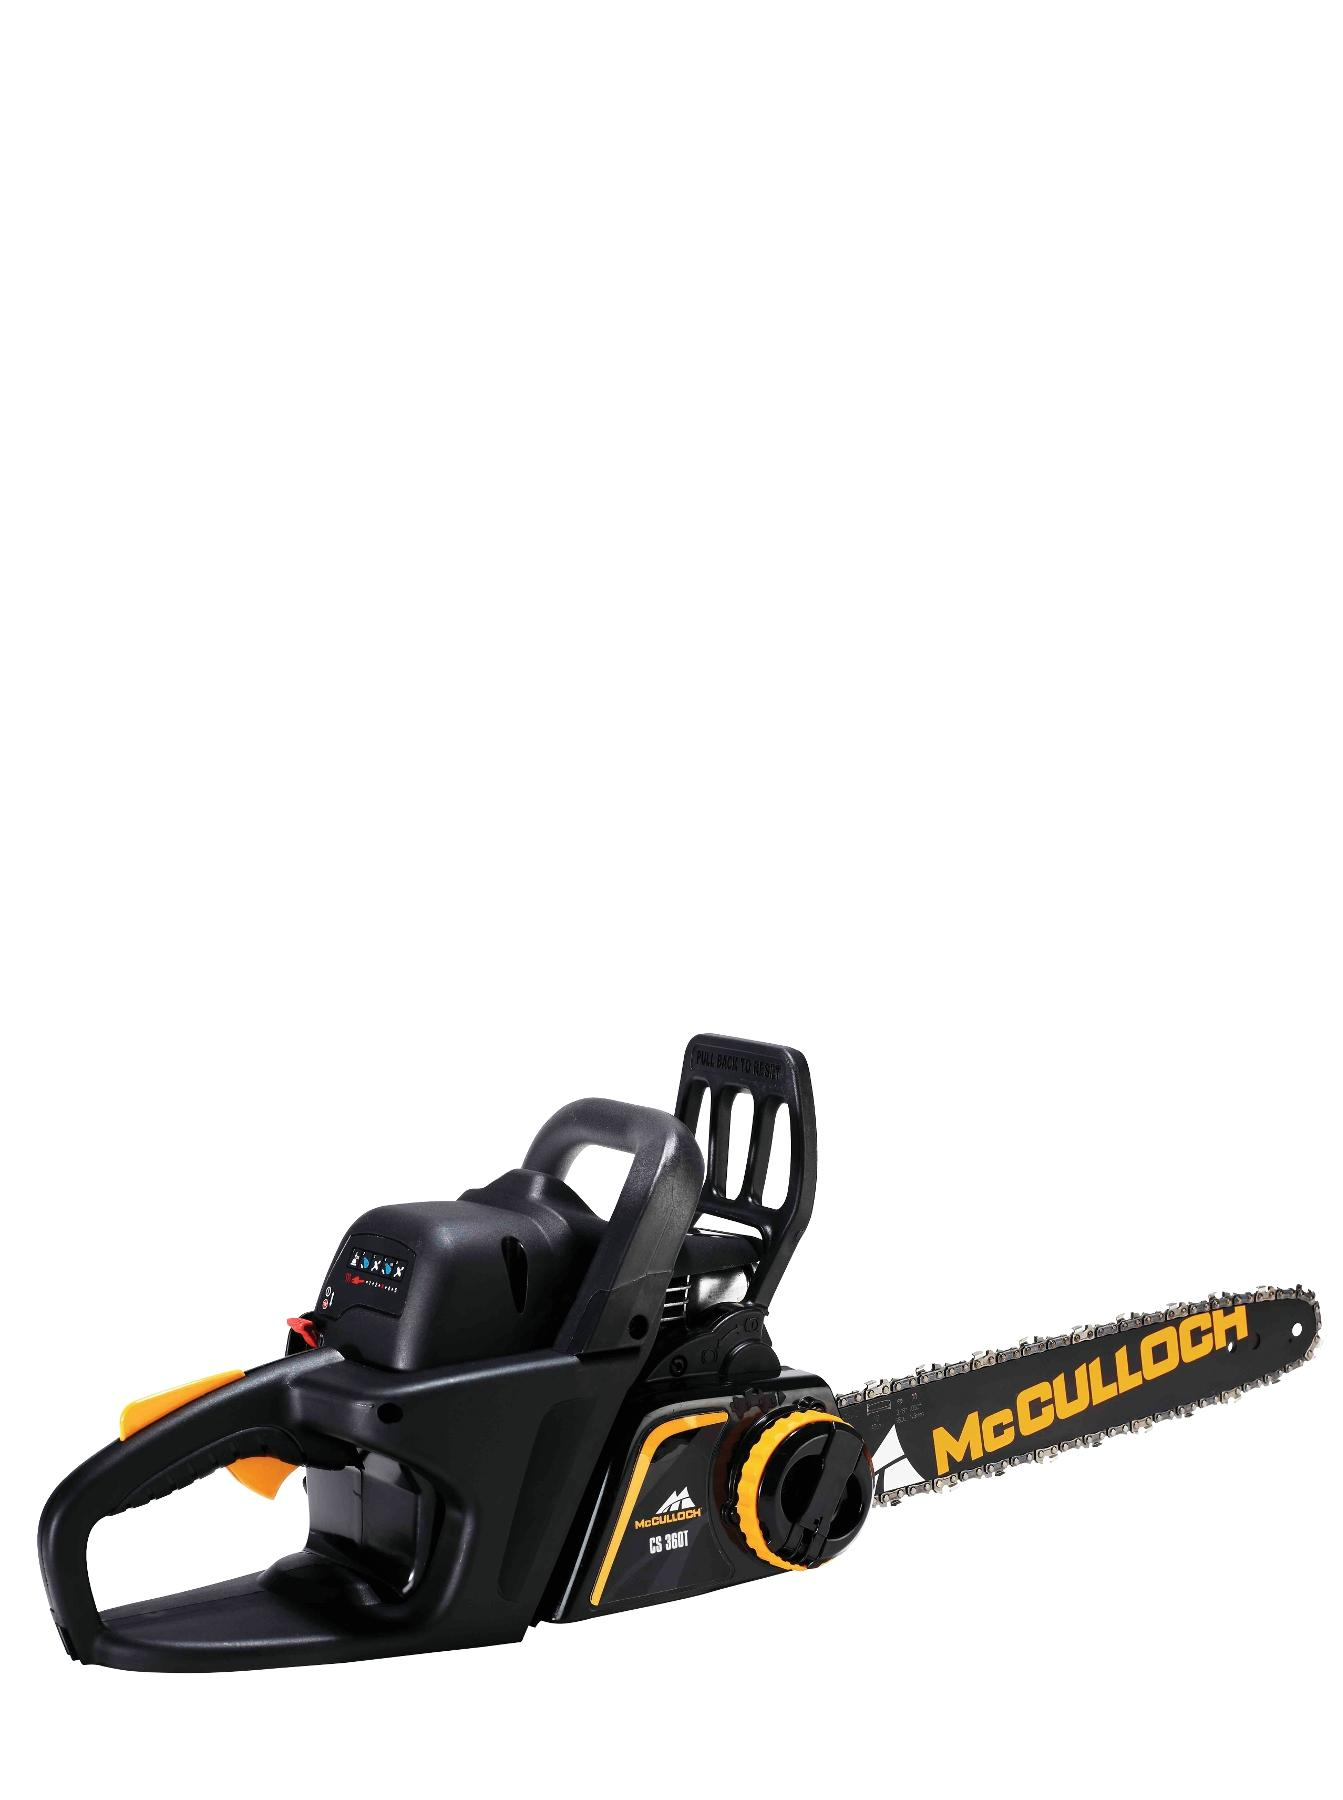 CS400T Chainsaw